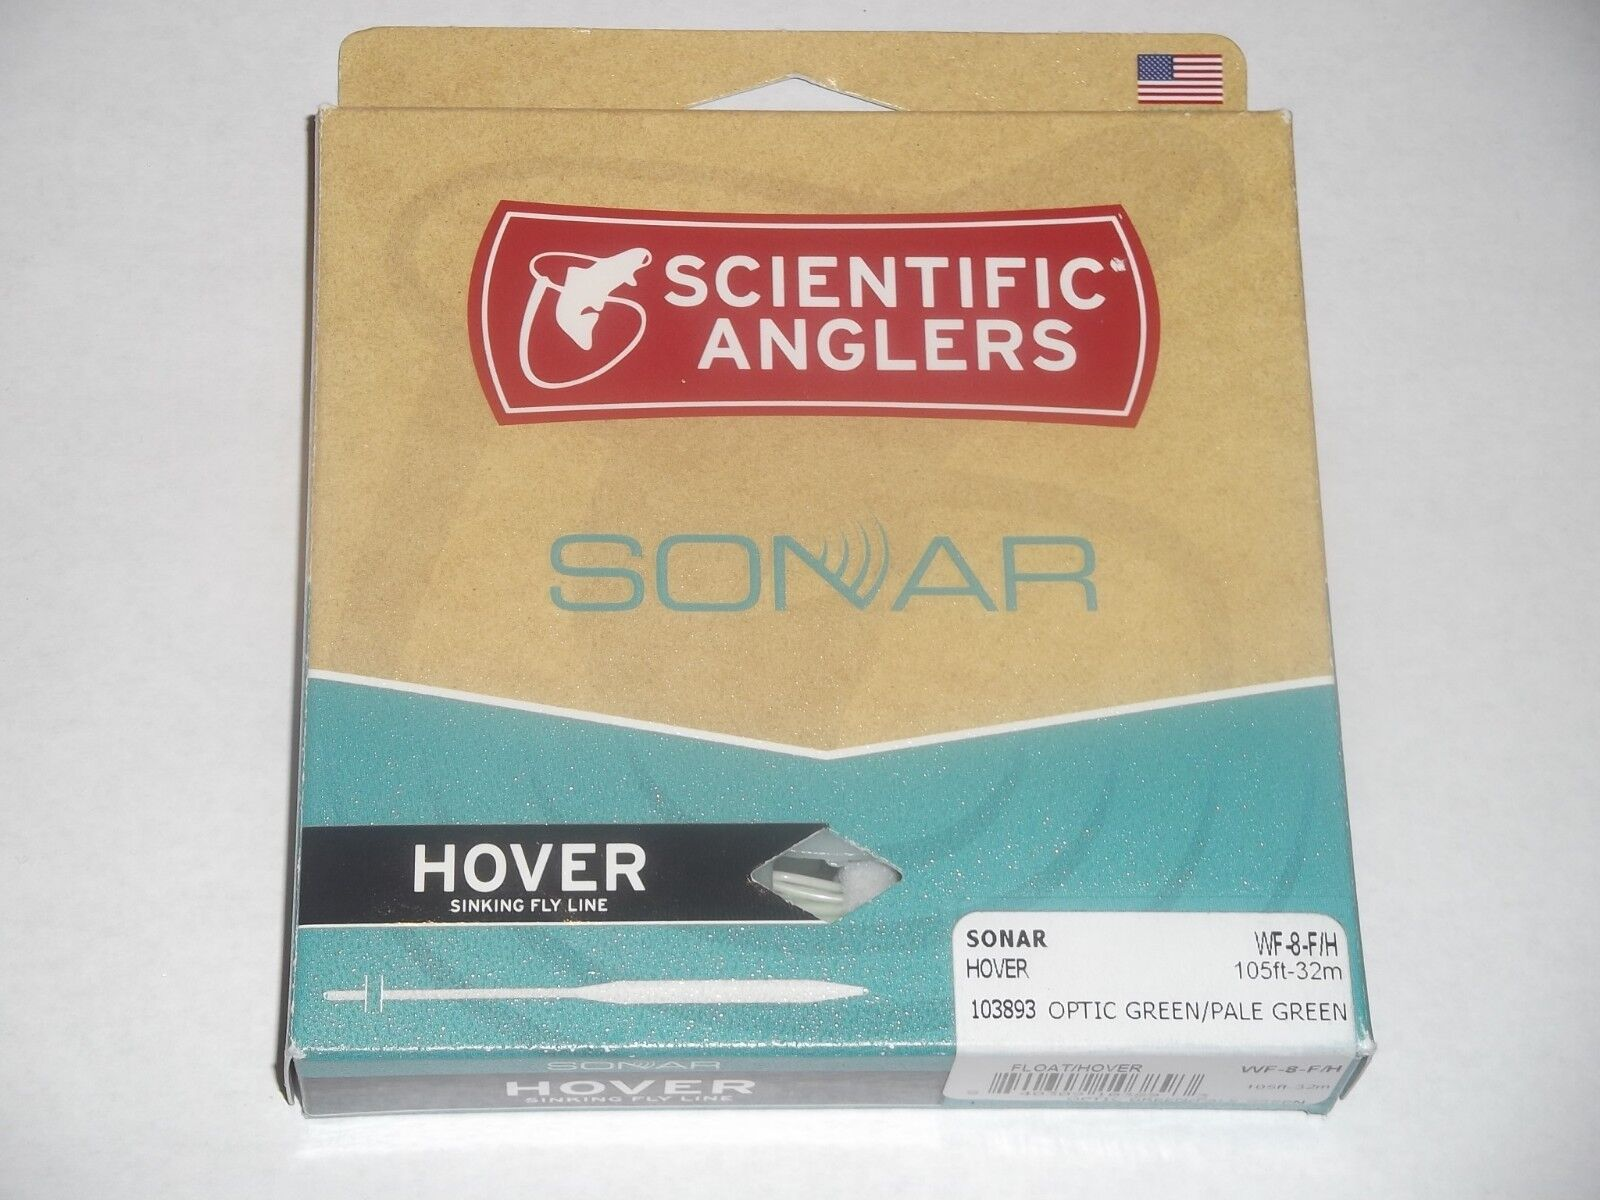 SCIENTIFIC ANGLERS SONAR HOVER WF-8-F H OPTIC GREEN PALE GREEN FISHING LINE